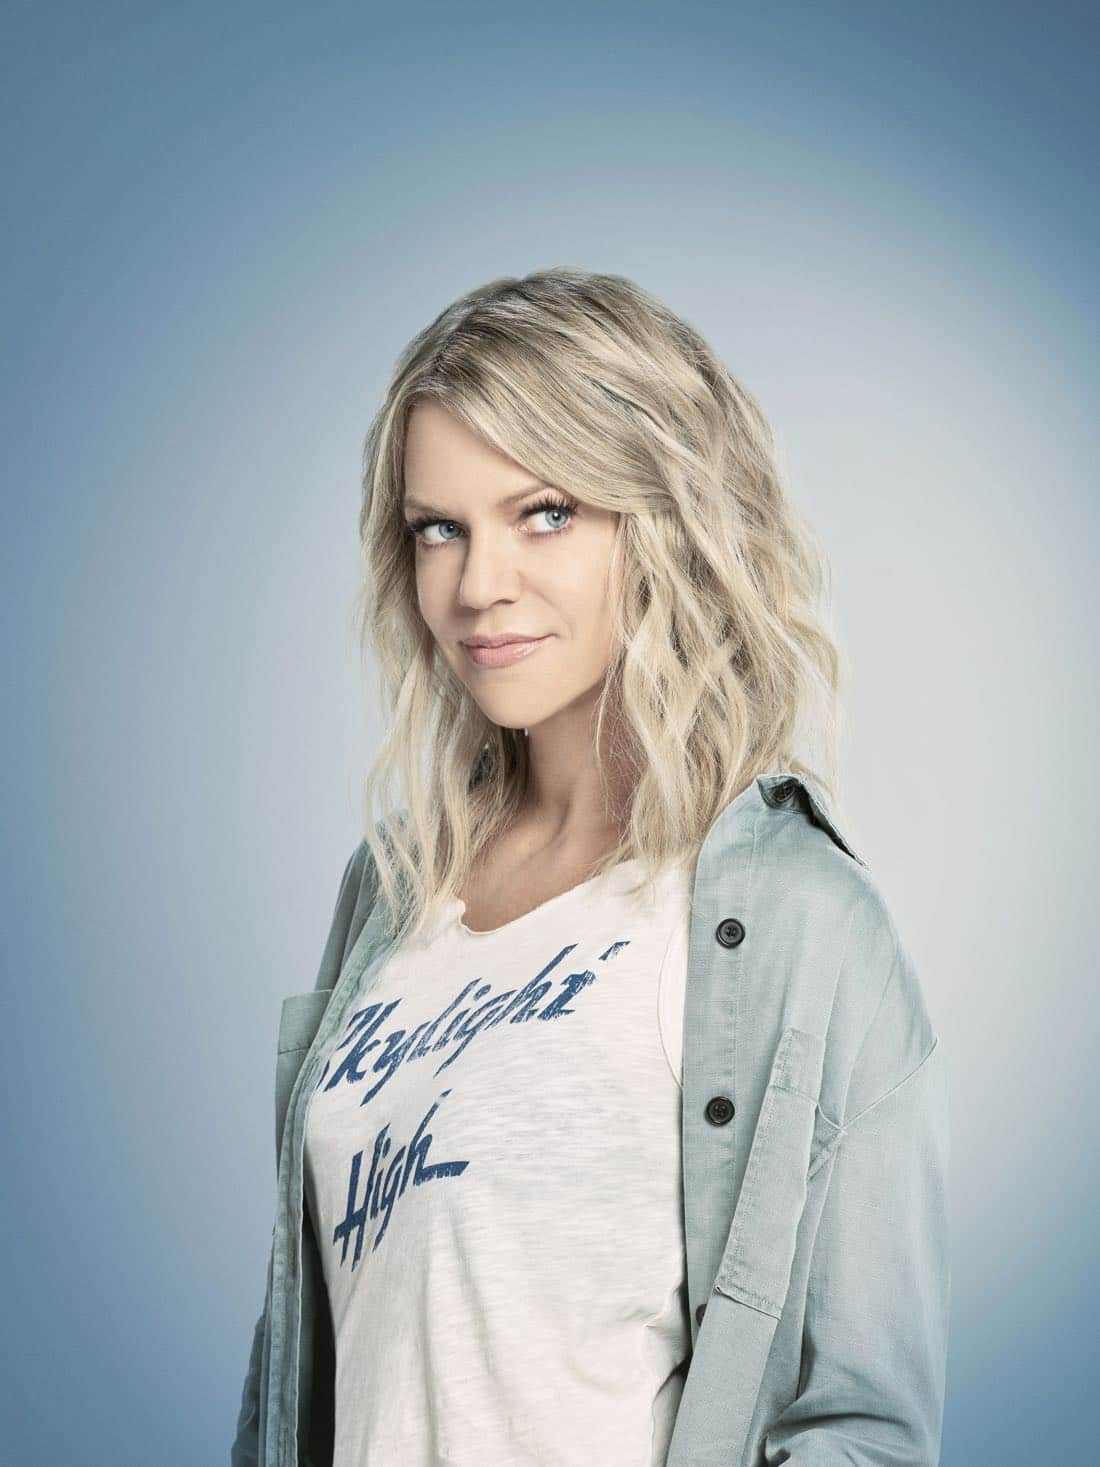 THE MICK: Kaitlin Olson. THE MICK Season Two premieres Tuesday, Sept. 26 (9:00-9:30 PM ET/PT) on FOX. ©2017 Fox Broadcasting Co. CR: Scott Council/FOX